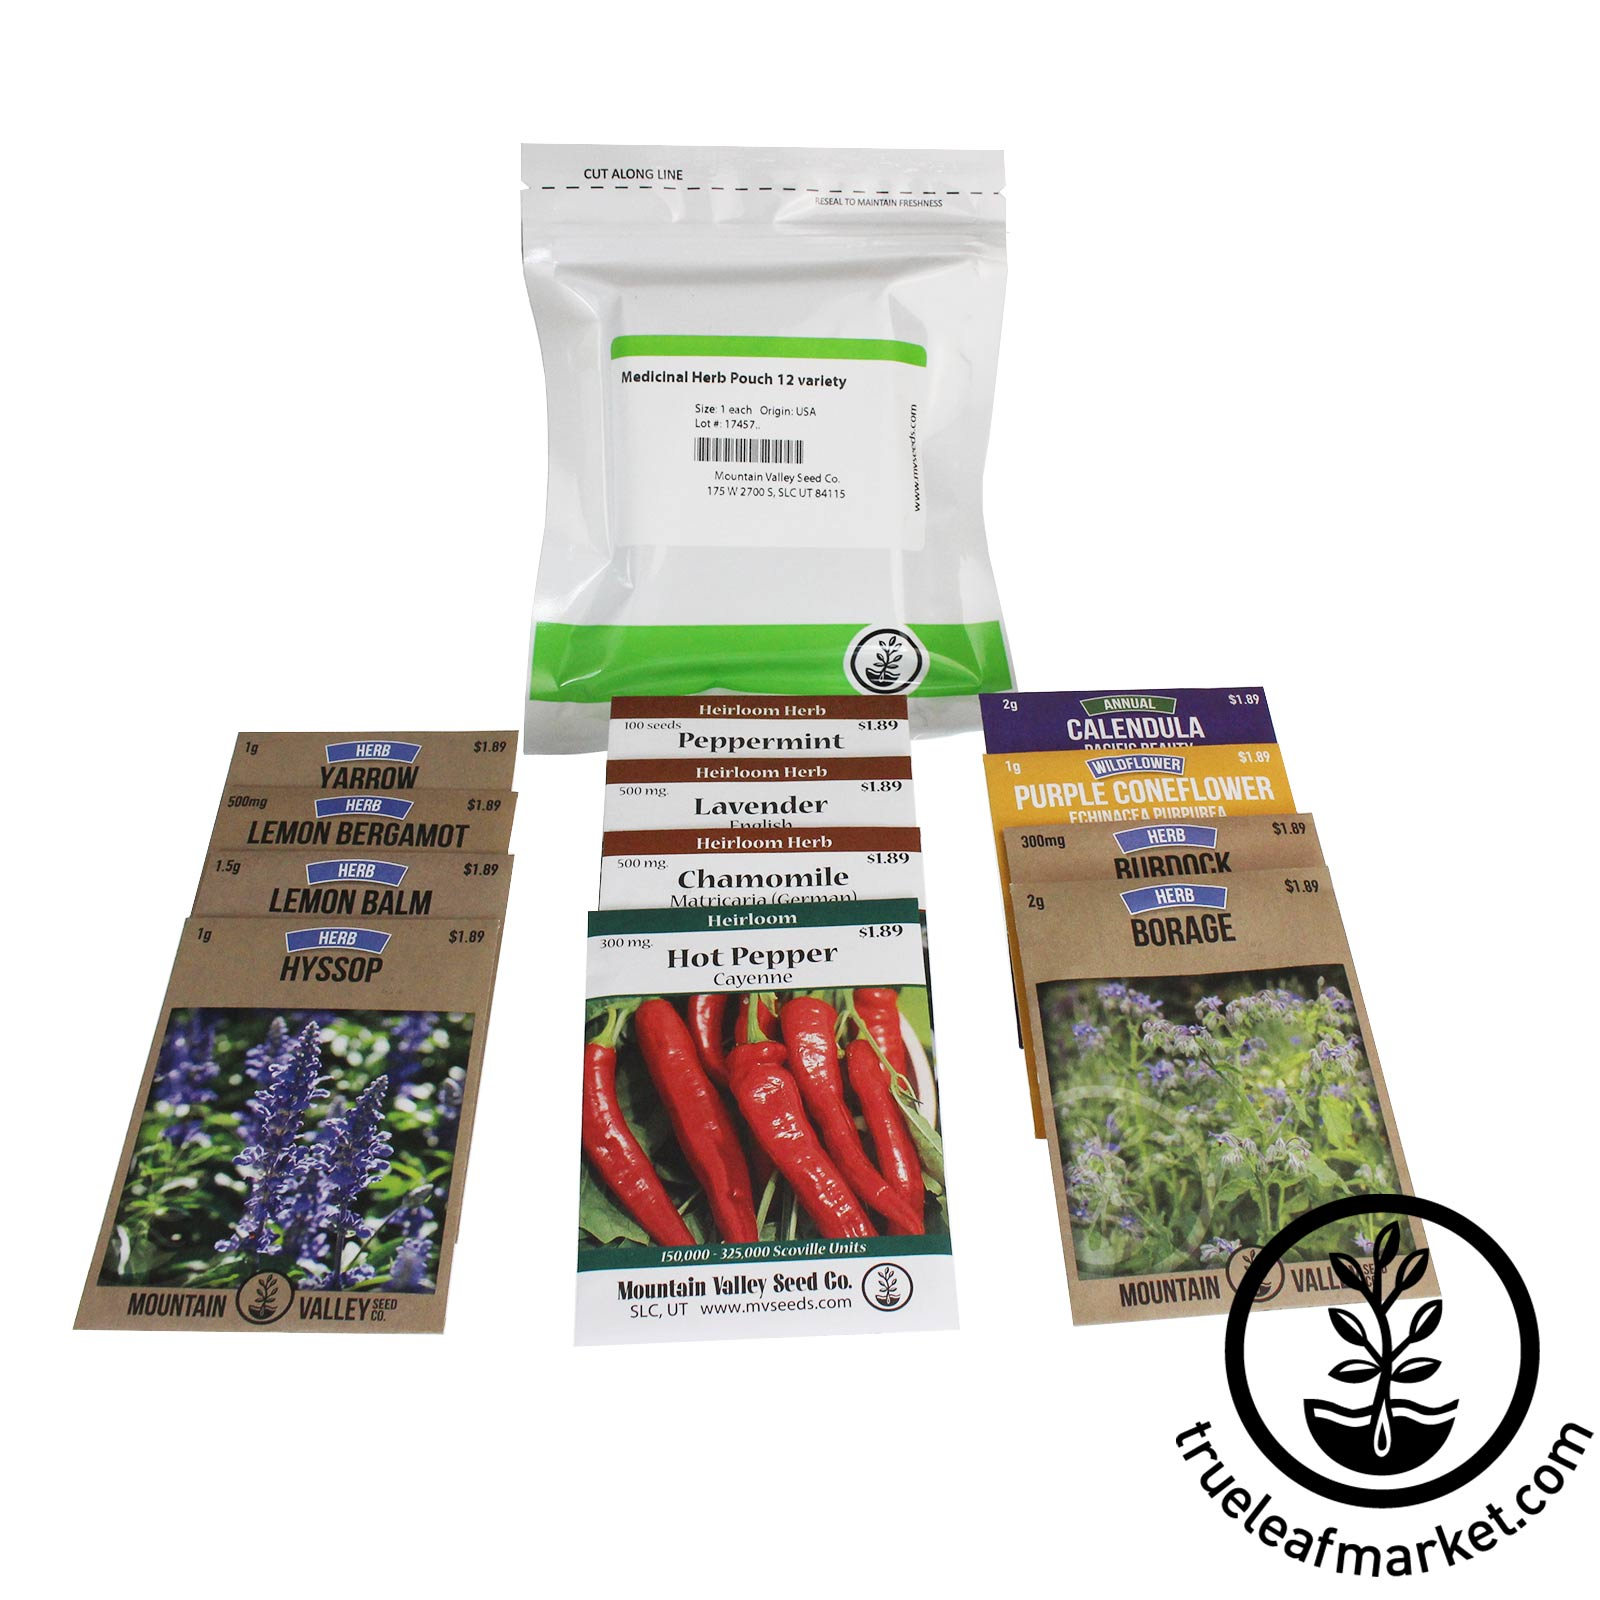 Medicinal Herb Seed Assortment medicinal,herb,seed,assortment